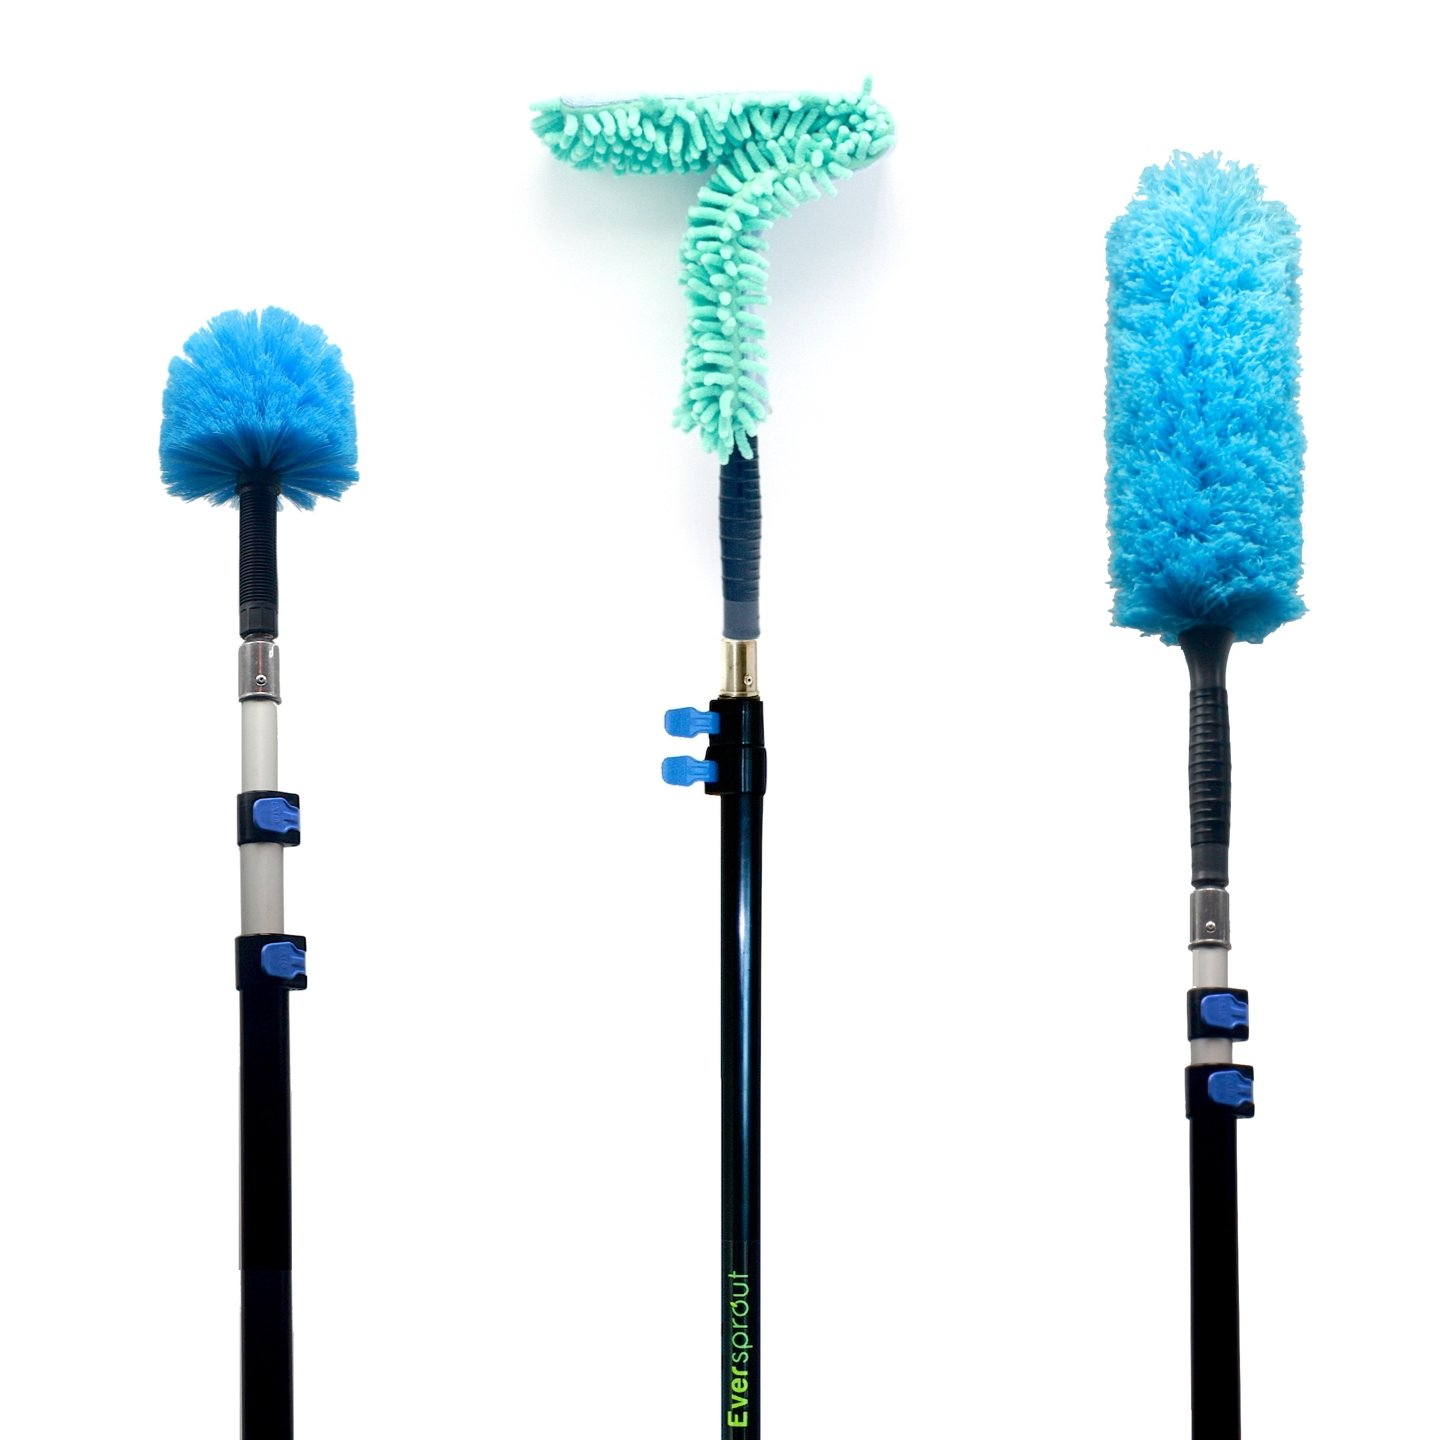 EVERSPROUT Duster 3-Pack with Extension-Pole (20+ Foot Reach) | Hand-packaged Cobweb Duster, Microfiber Feather Duster, Flexible Microfiber Ceiling & Fan Duster | Aluminum Telescopic Pole by EVERSPROUT